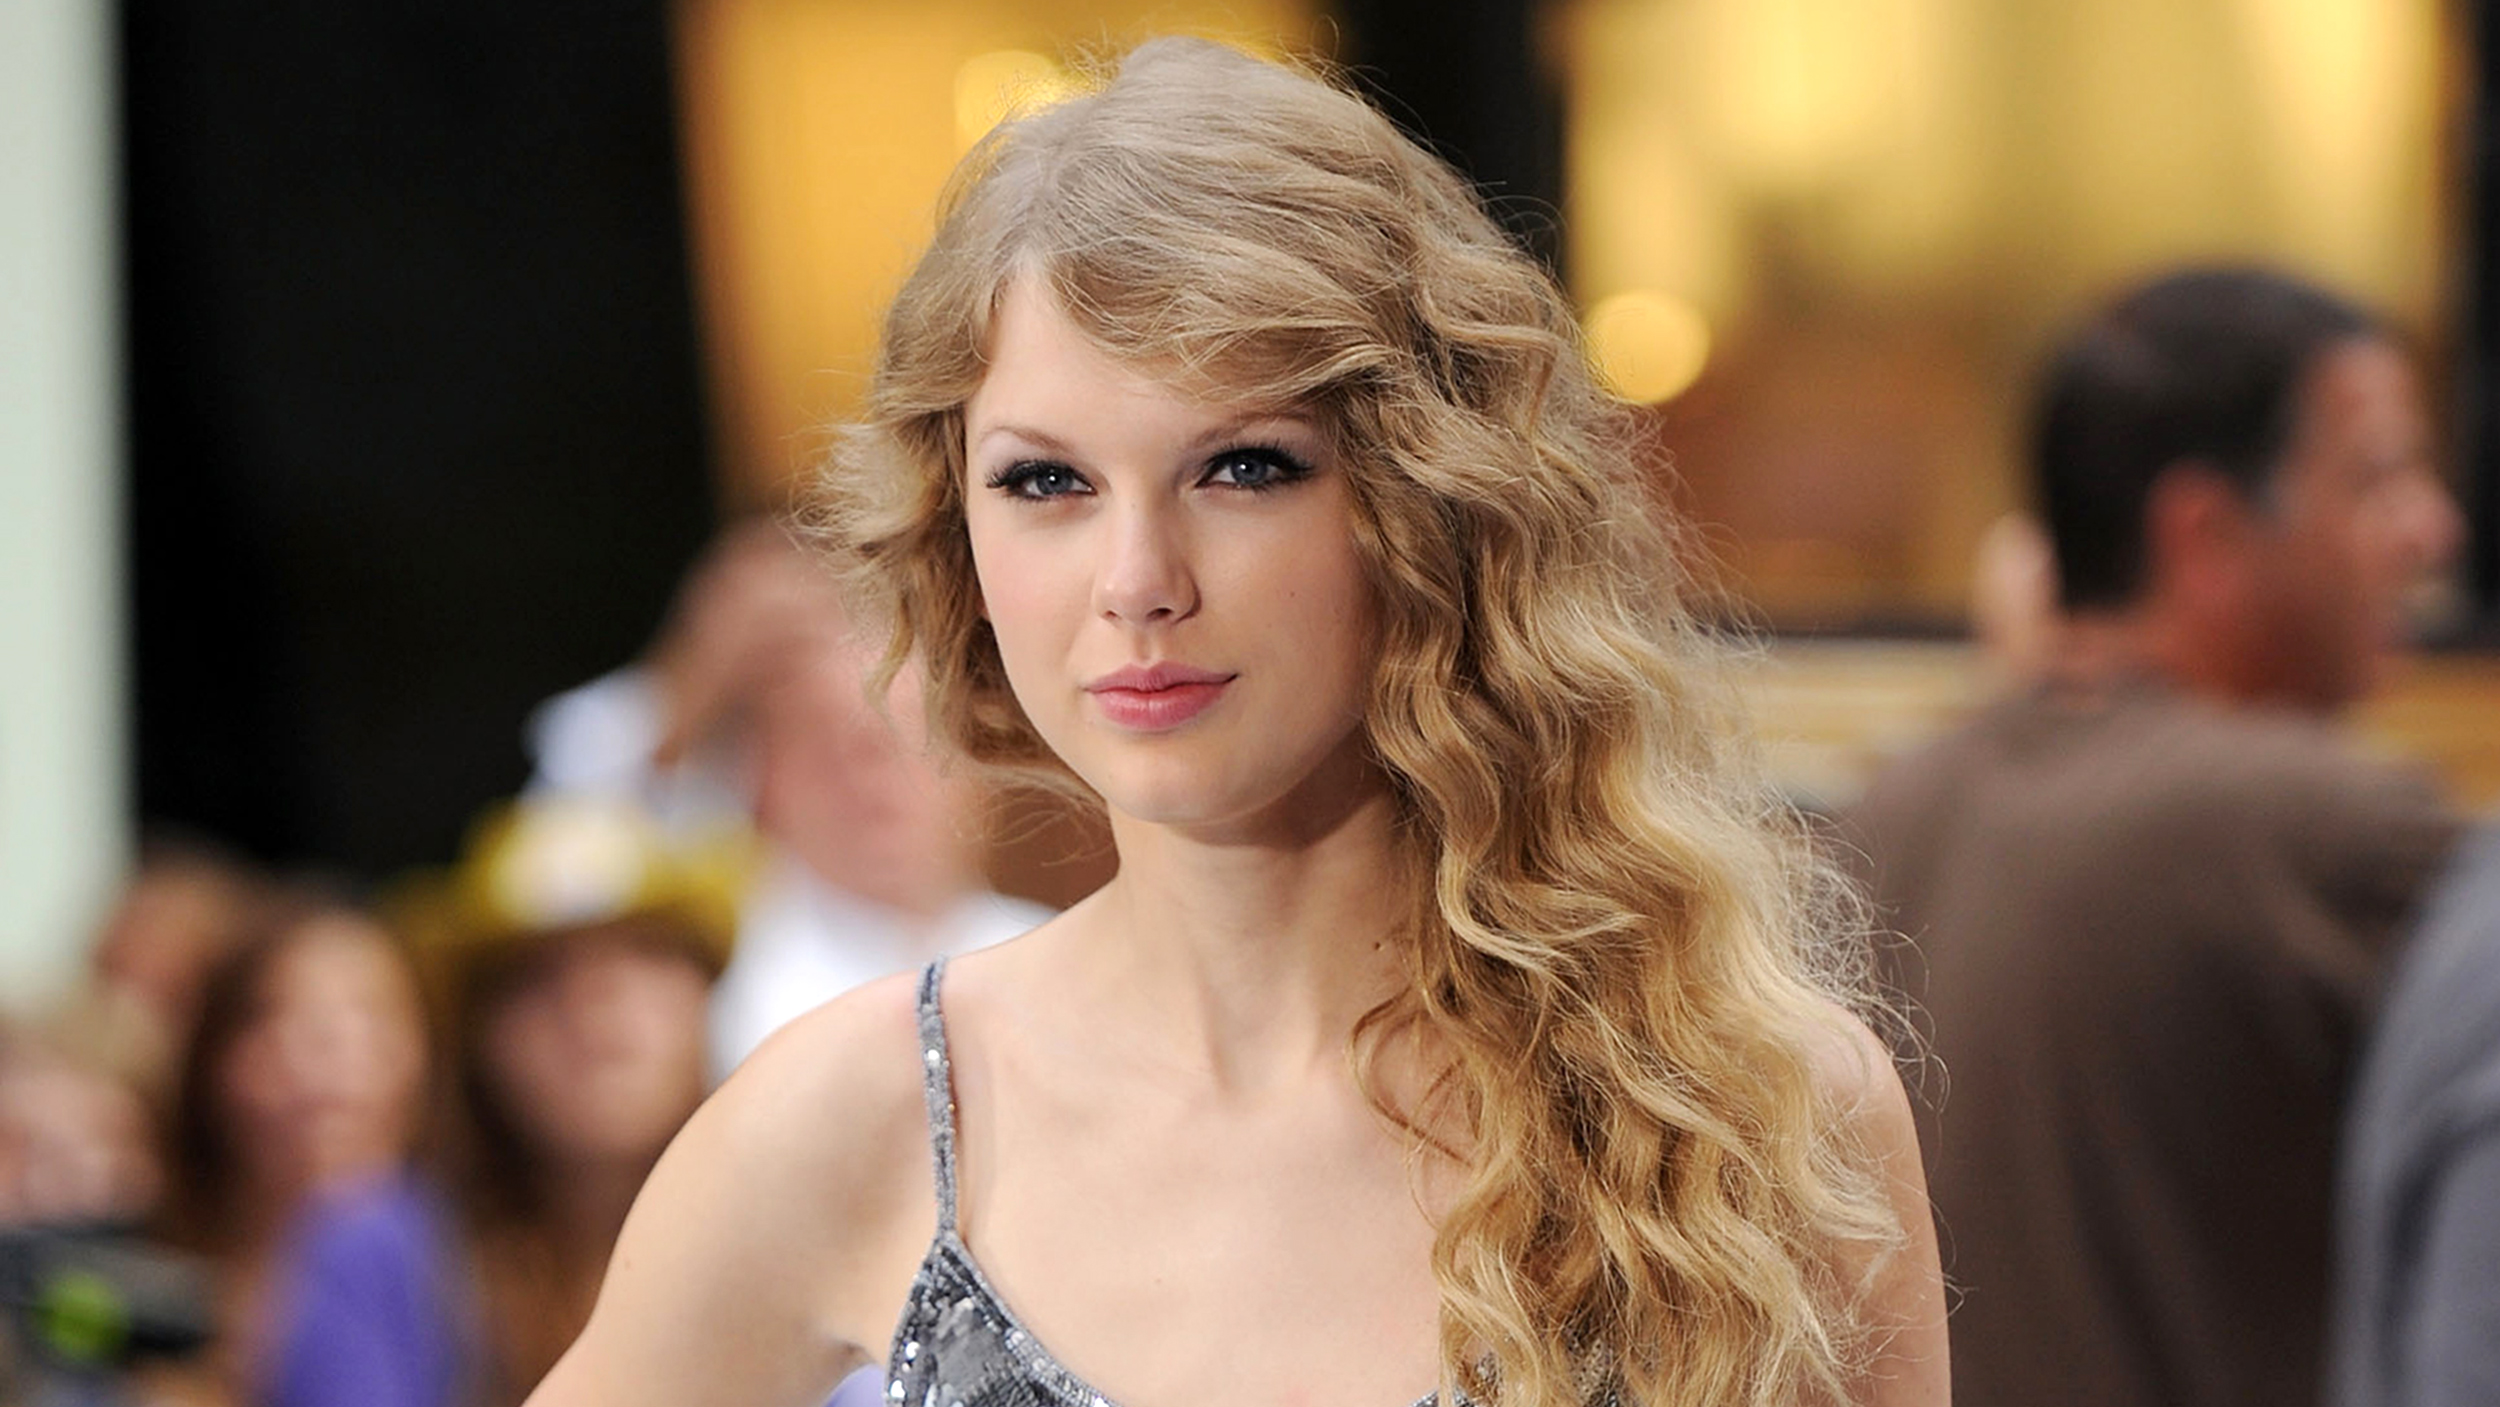 Taylor Swift S Hair Returns To Its Curly Country Music Roots